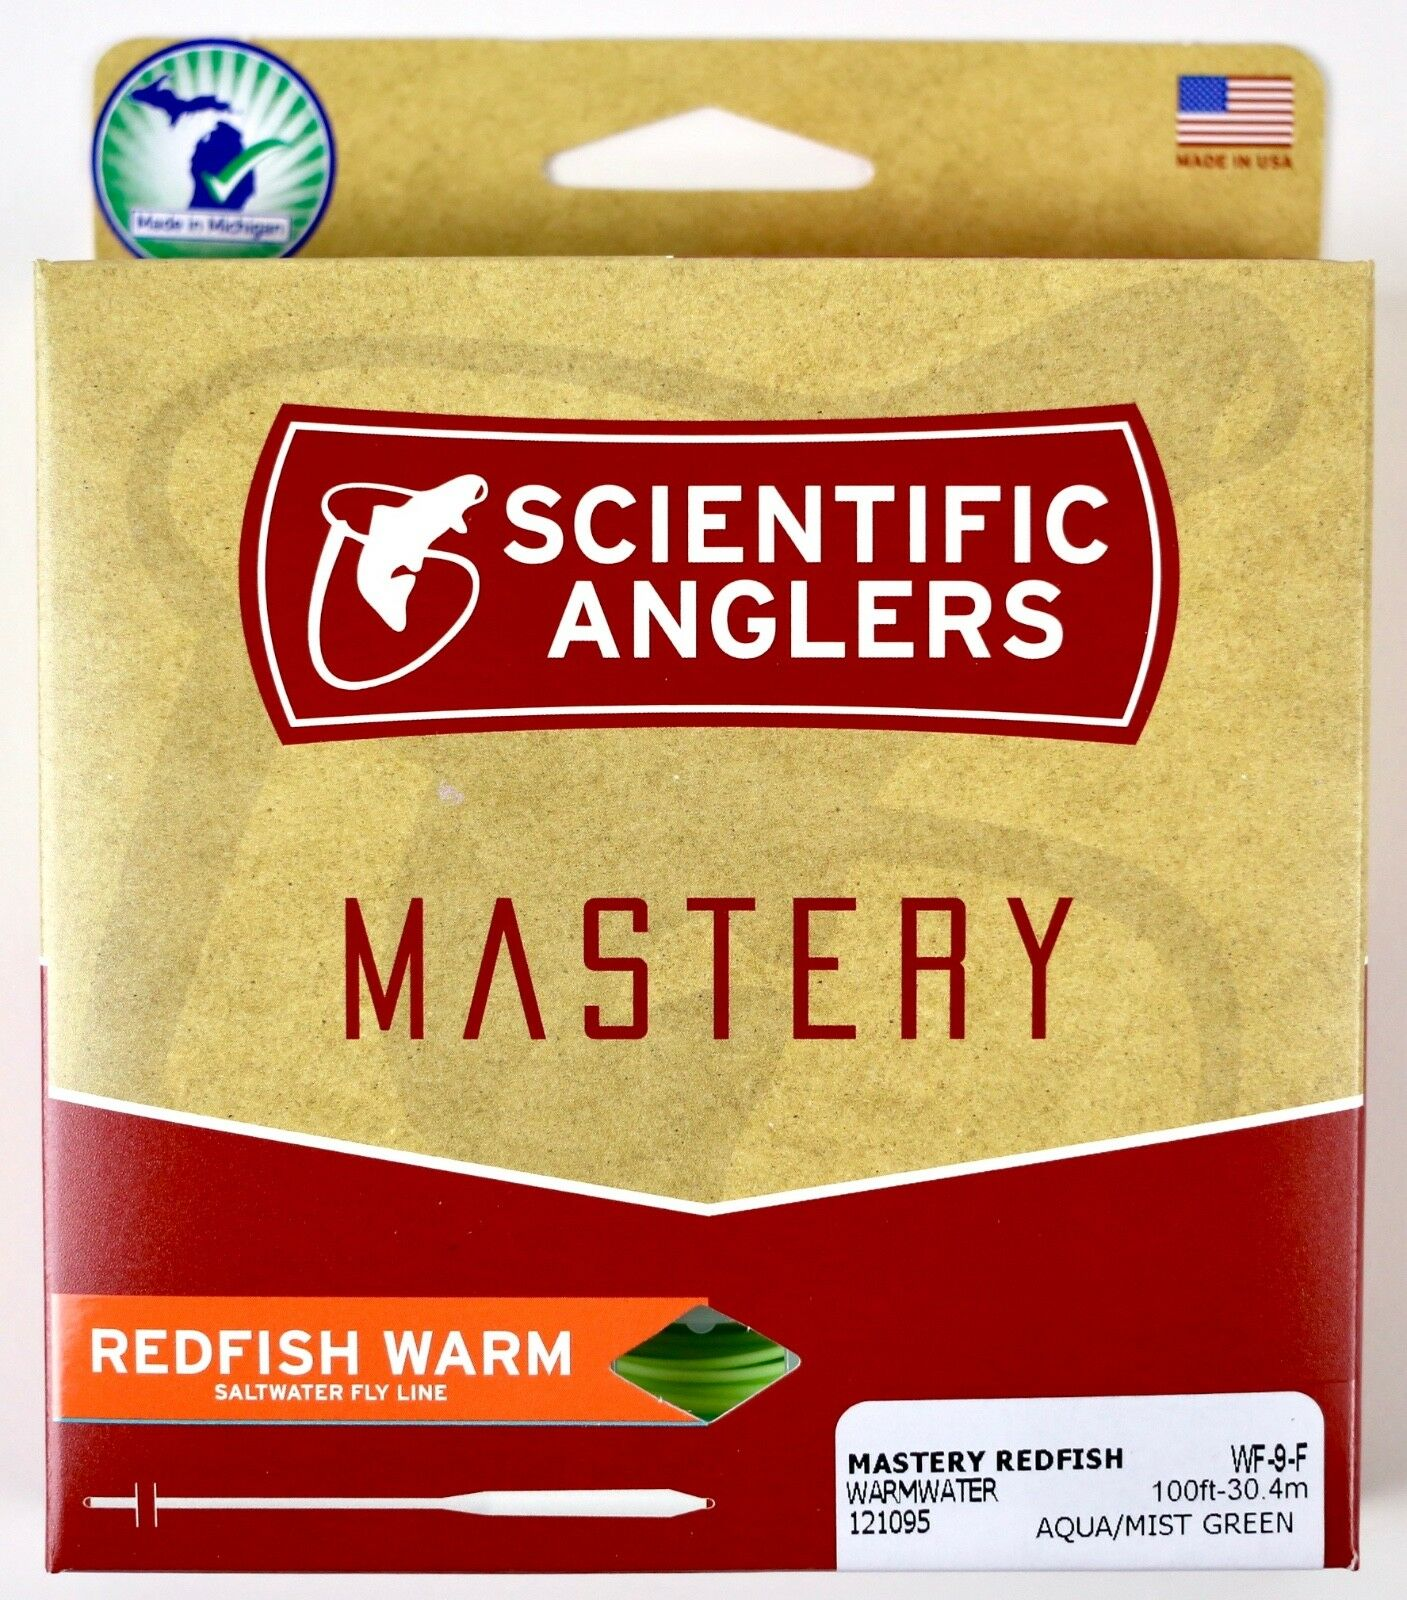 Scientific Anglers Mastery Redfish Warm Fly Line WF9F  Free Fast Ship 121095